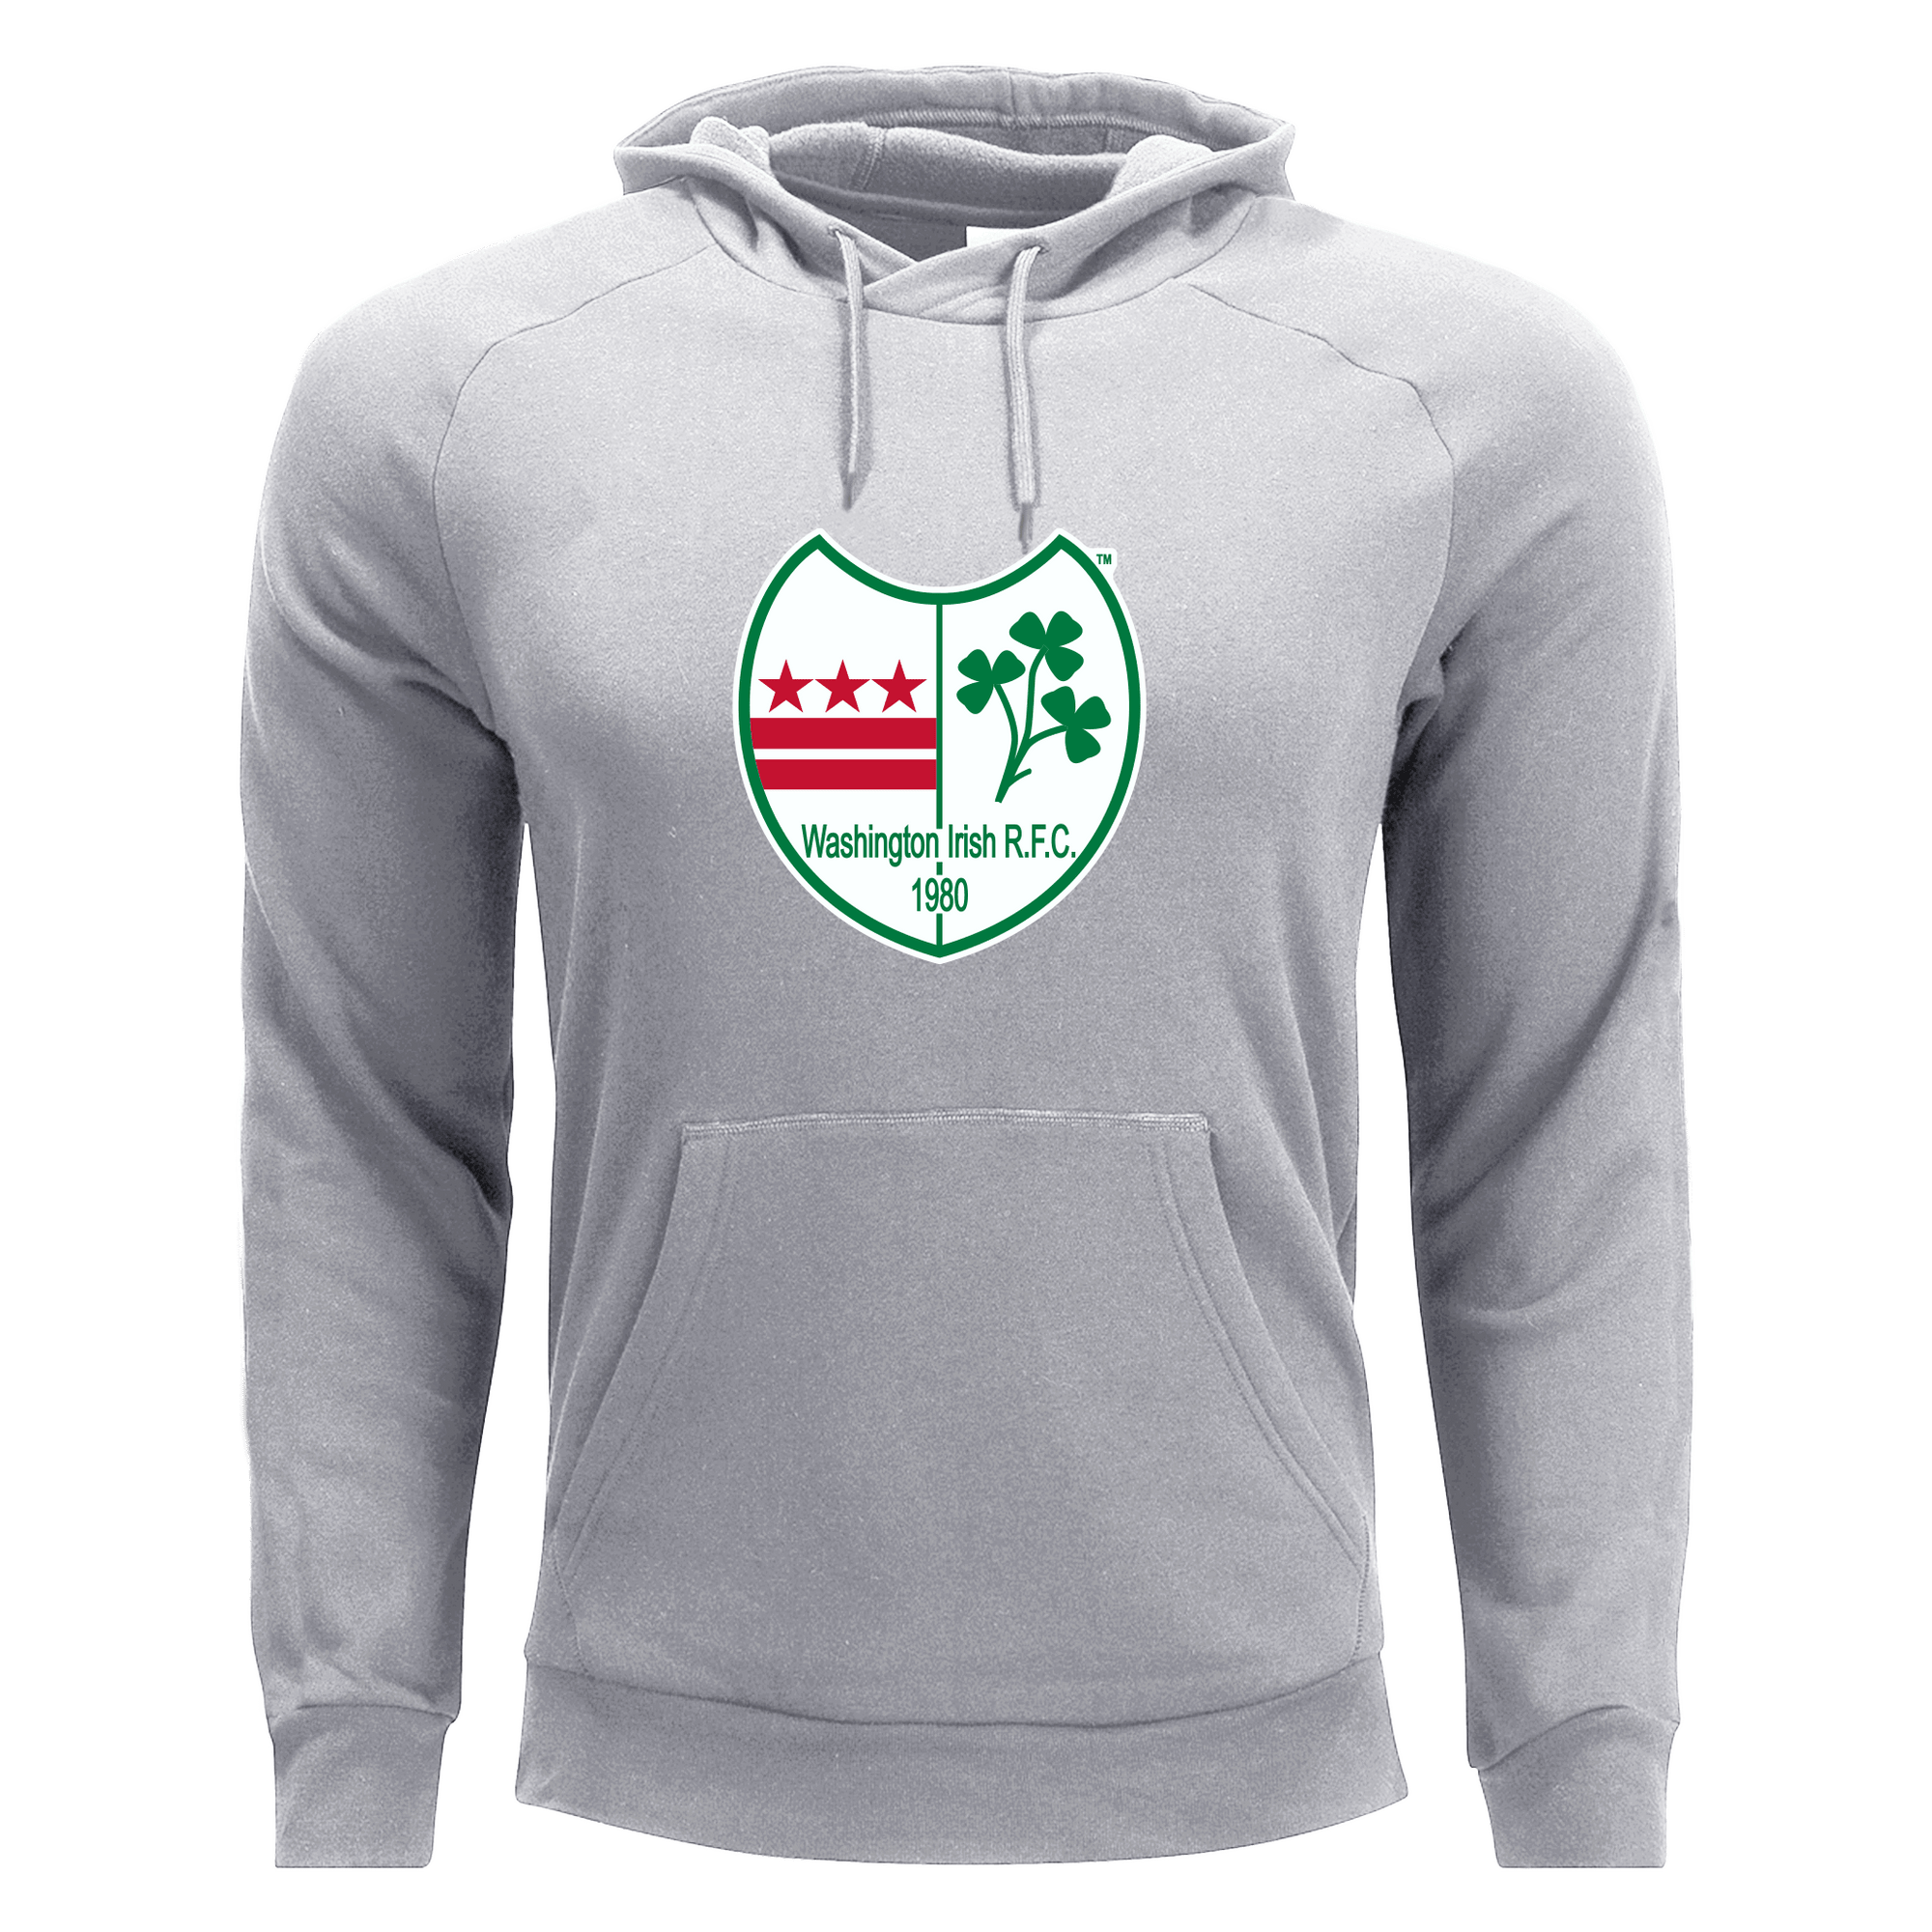 Washington Irish Rugby Unisex Hoodie Grey